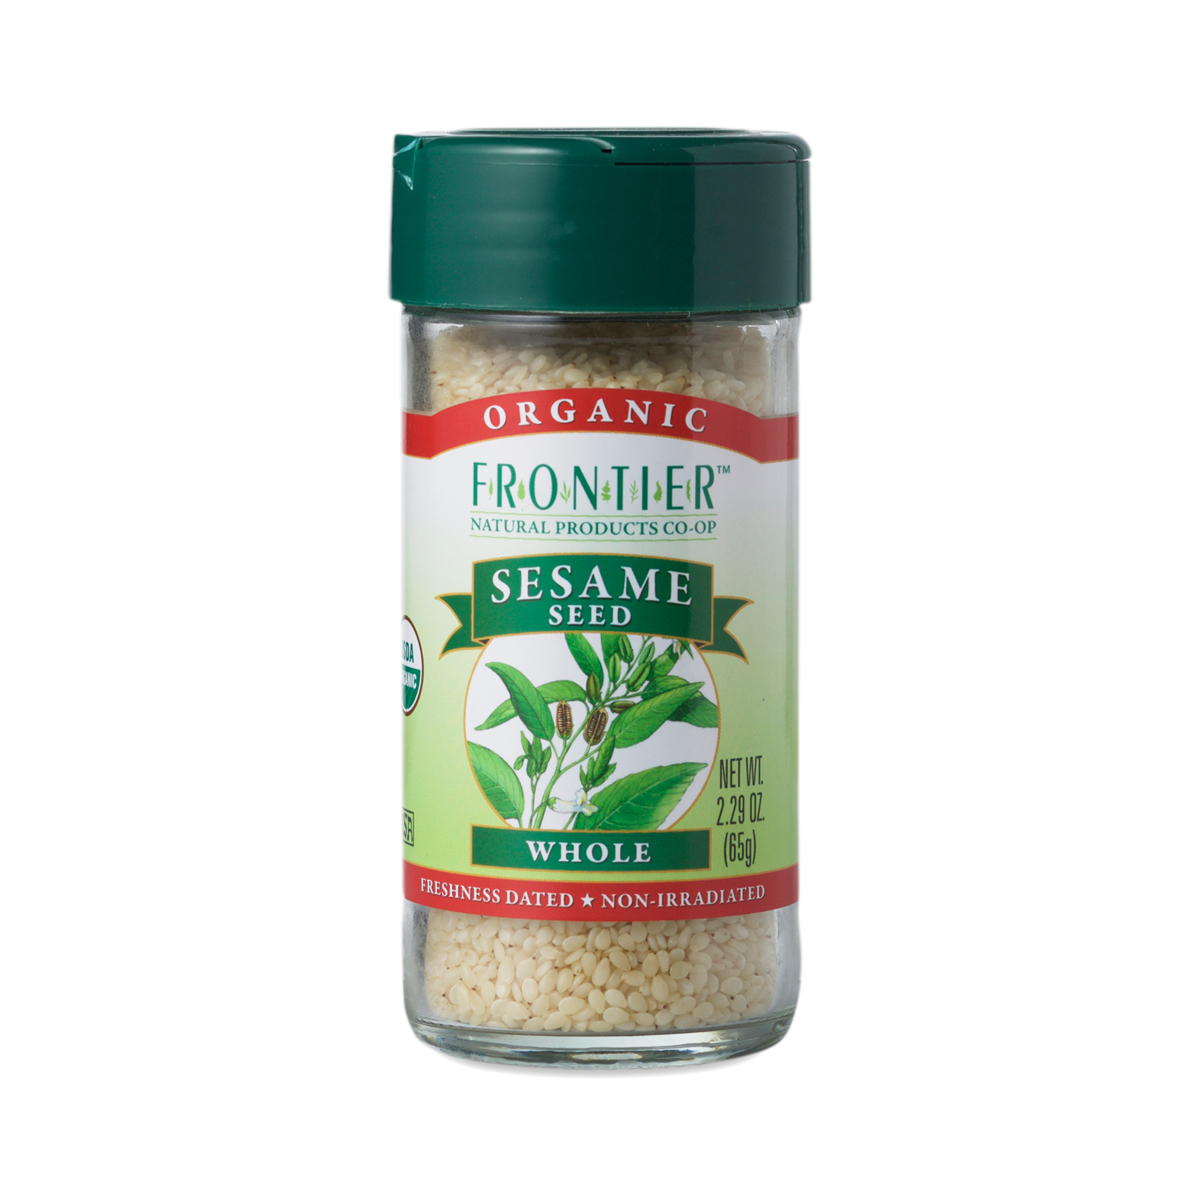 Whole Organic Sesame Seed by Frontier Natural Foods - Thrive Market